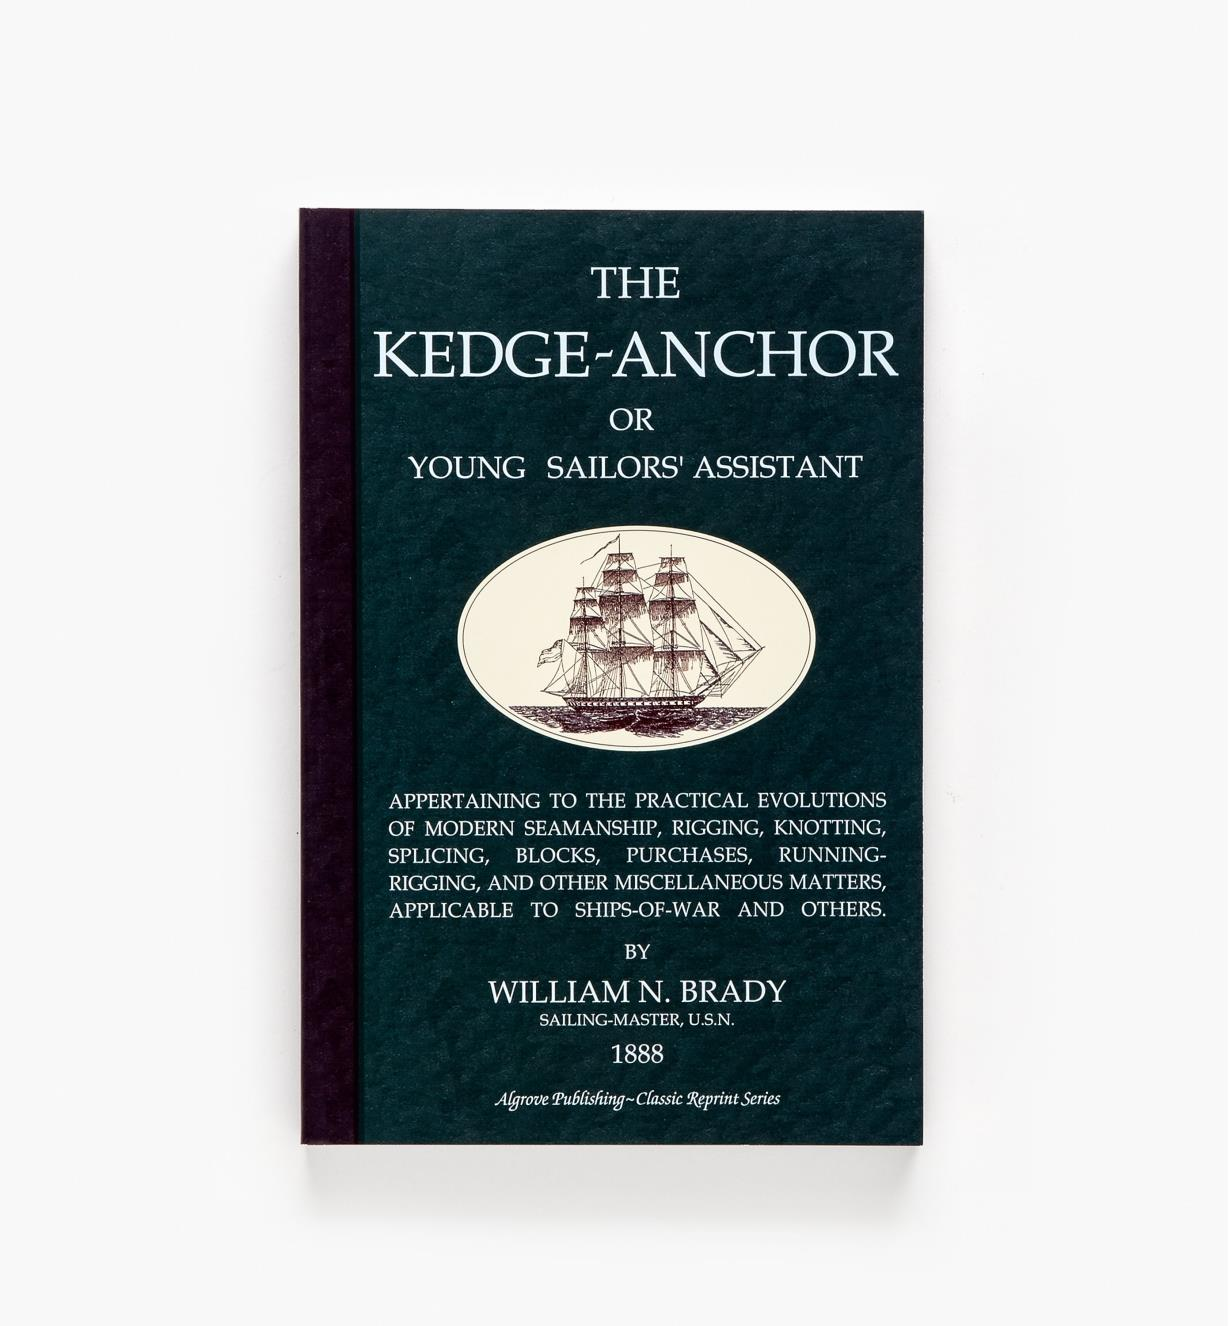 49L8144 - The Kedge-Anchor or Young Sailors' Assistant